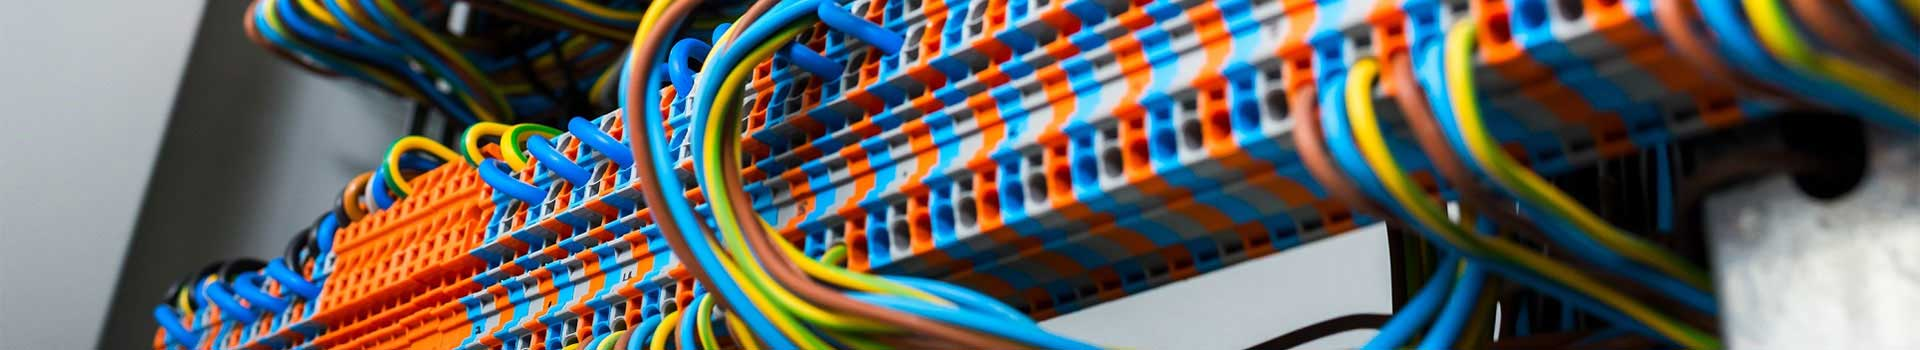 Fixed Wire Testing & Electrical Inspections